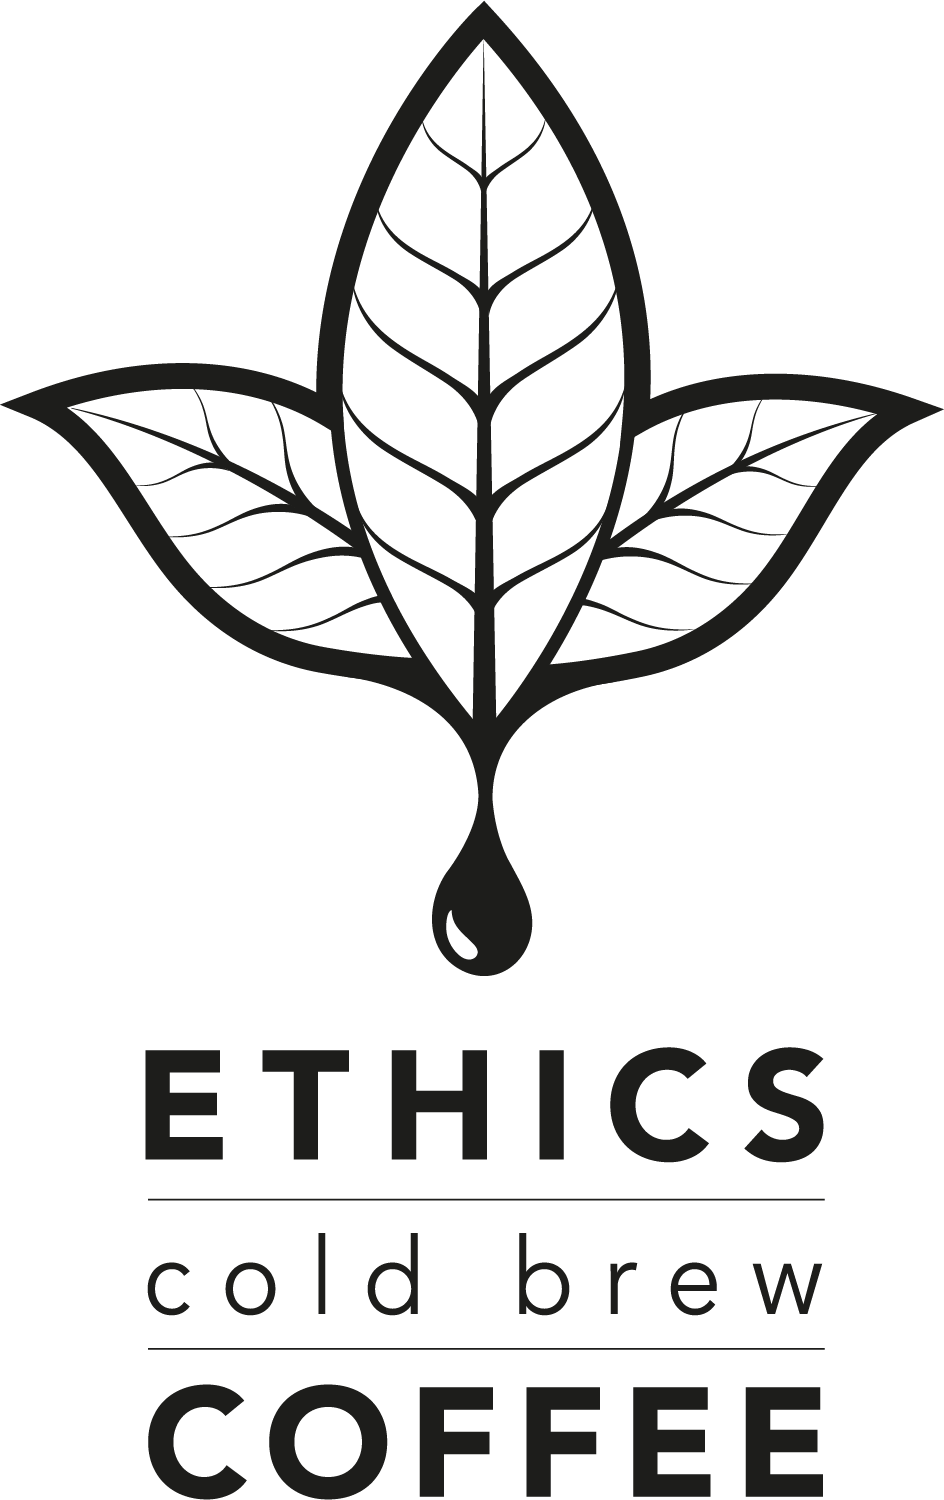 Café ecológico Barcelona - Ethics Coffee